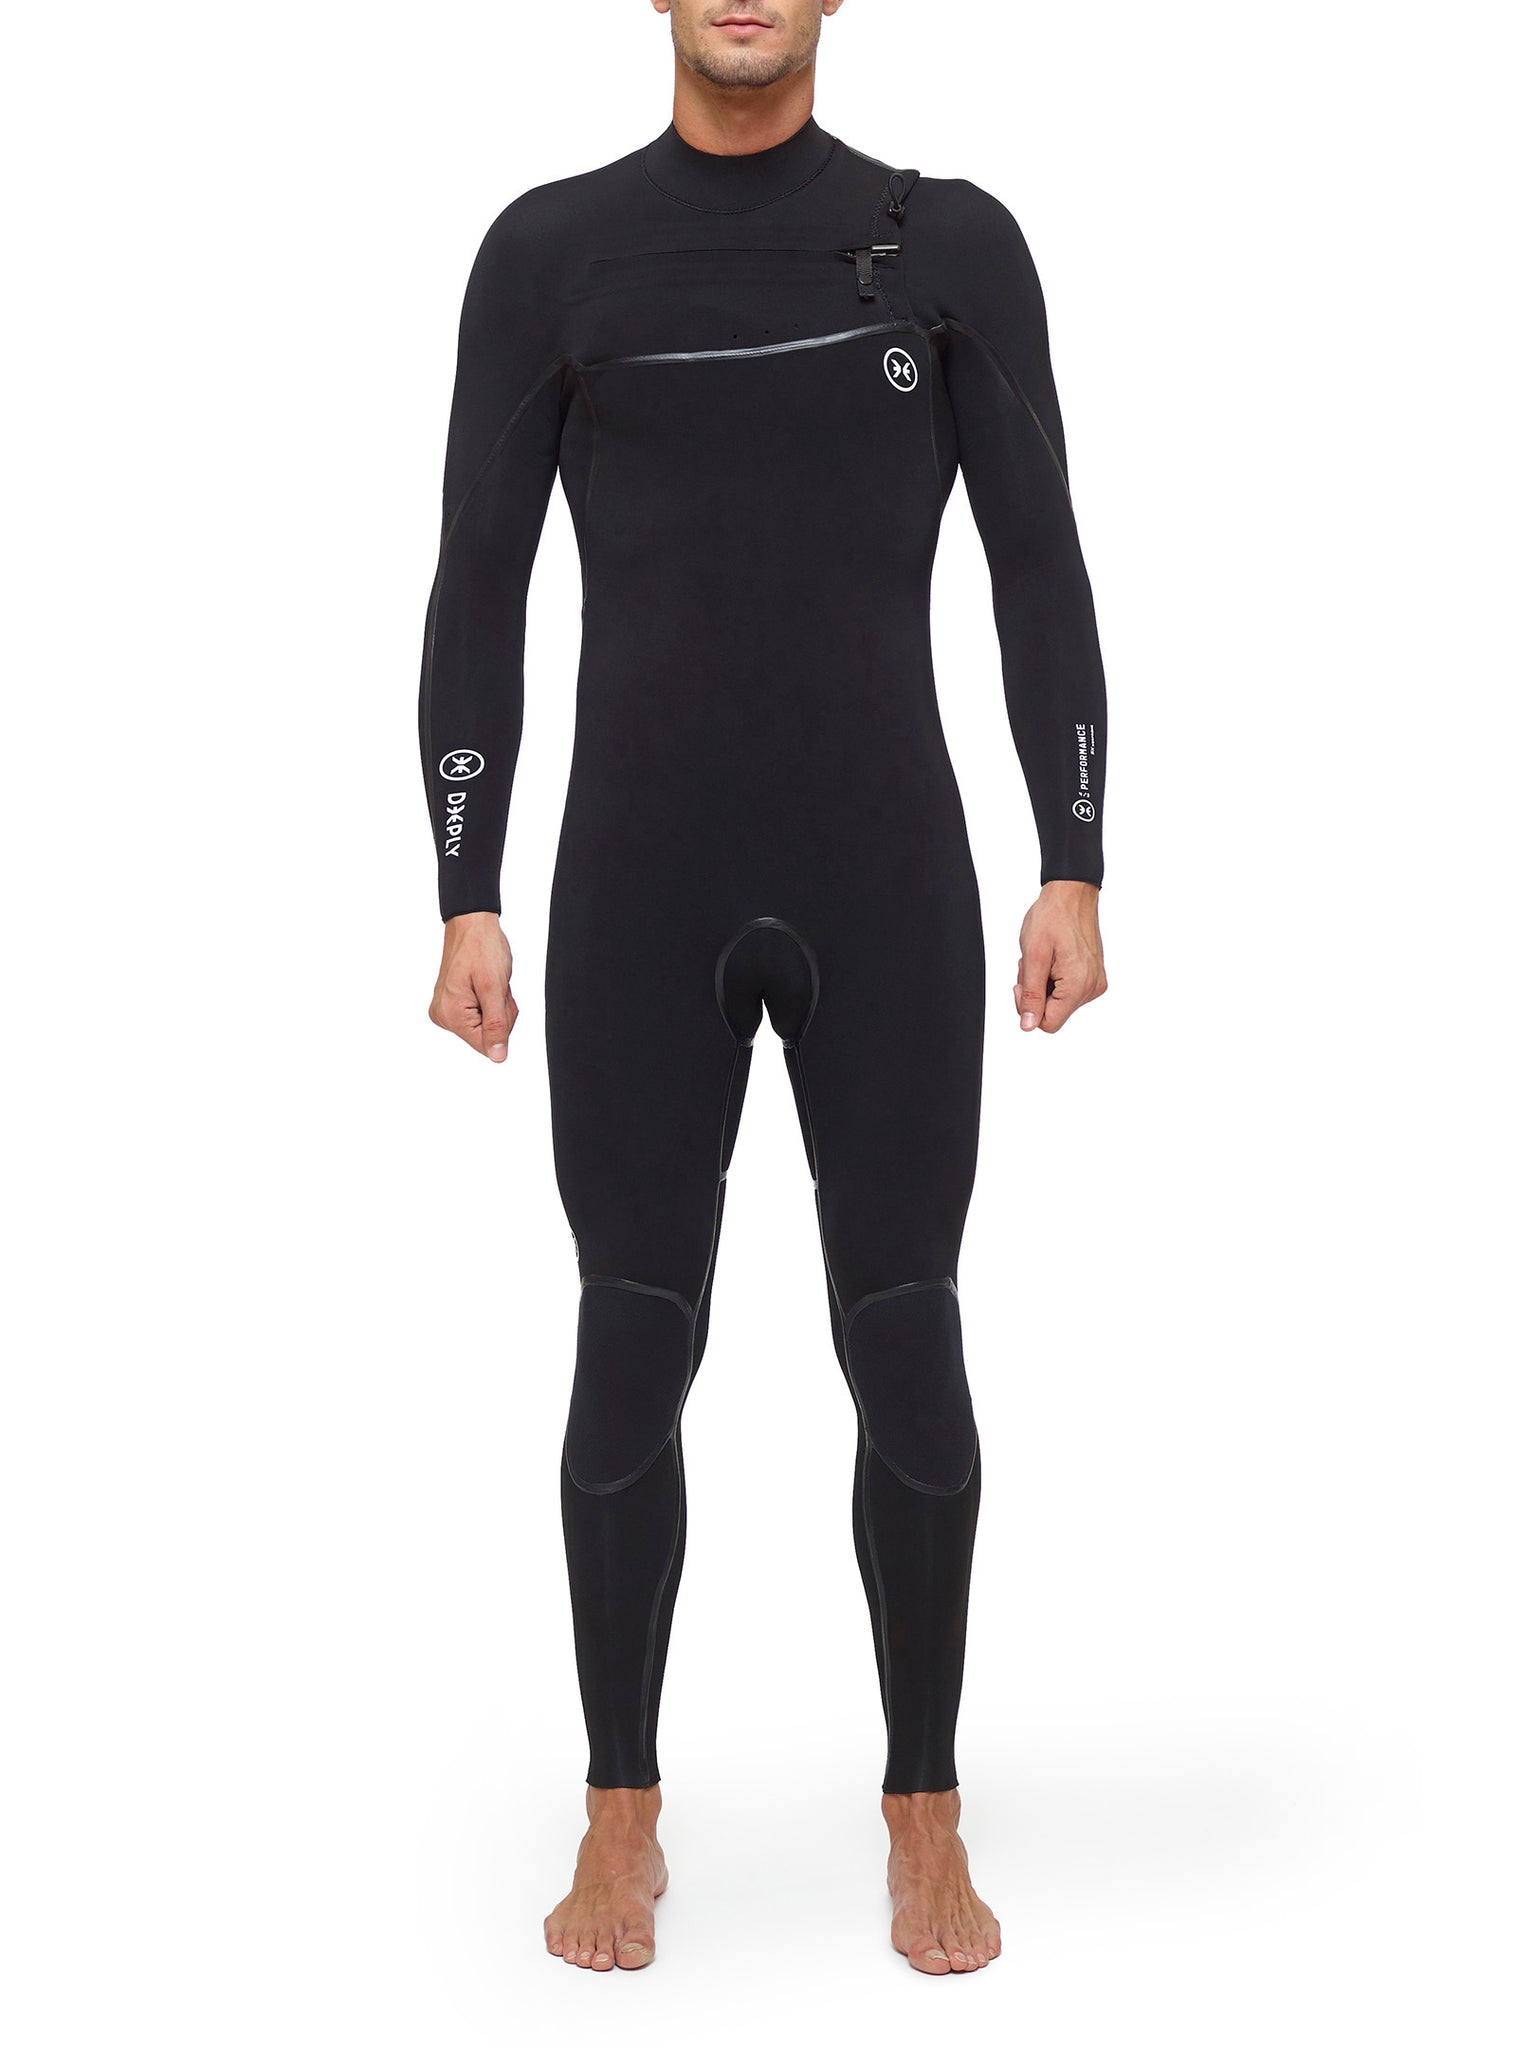 Wetsuit Man Performance 4/3 Chest Zip Black